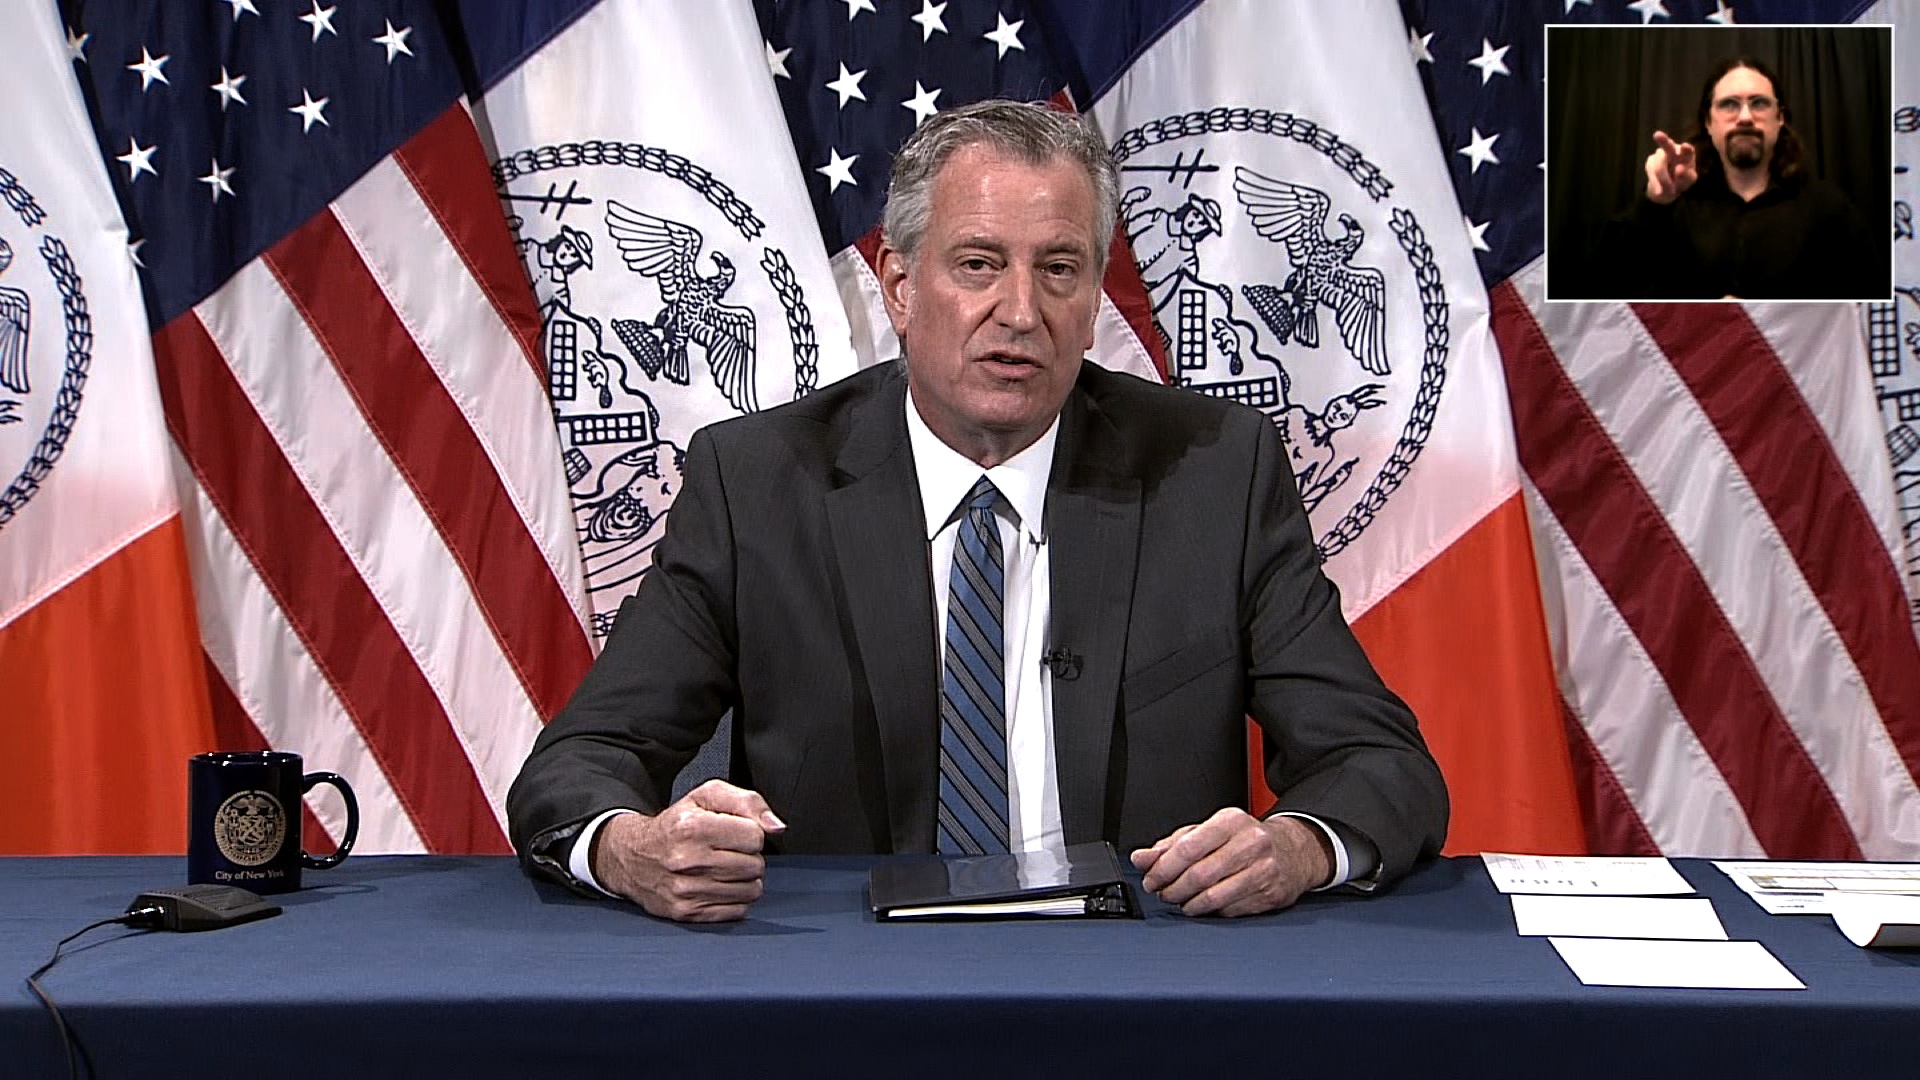 New York City Mayor Bill de Blasio speaks during a press conference in New York on June 5.